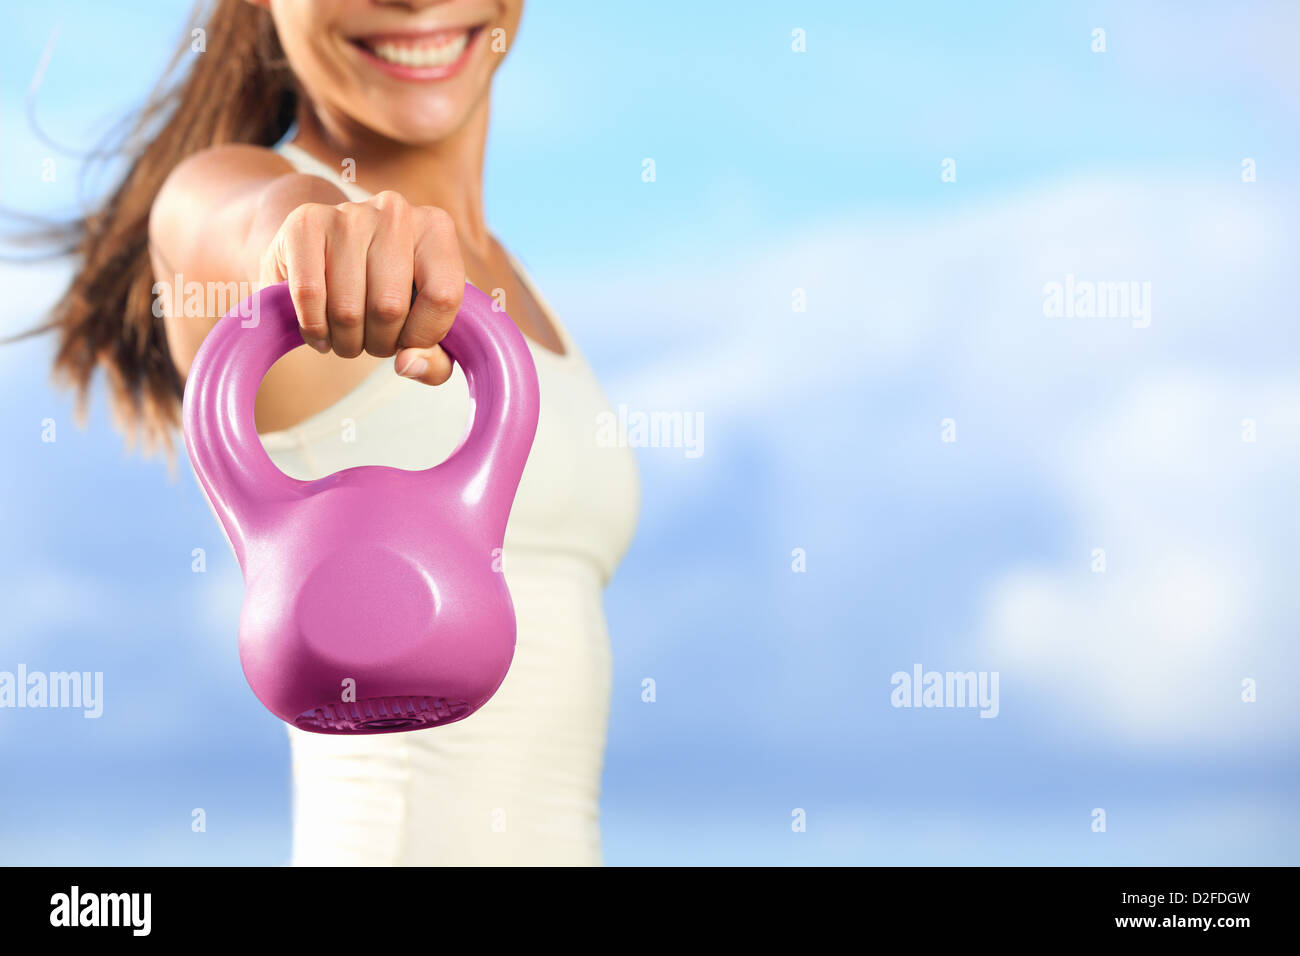 Closeup of woman's hand lifting kettlebell outside against blue sky with copy space - Stock Image